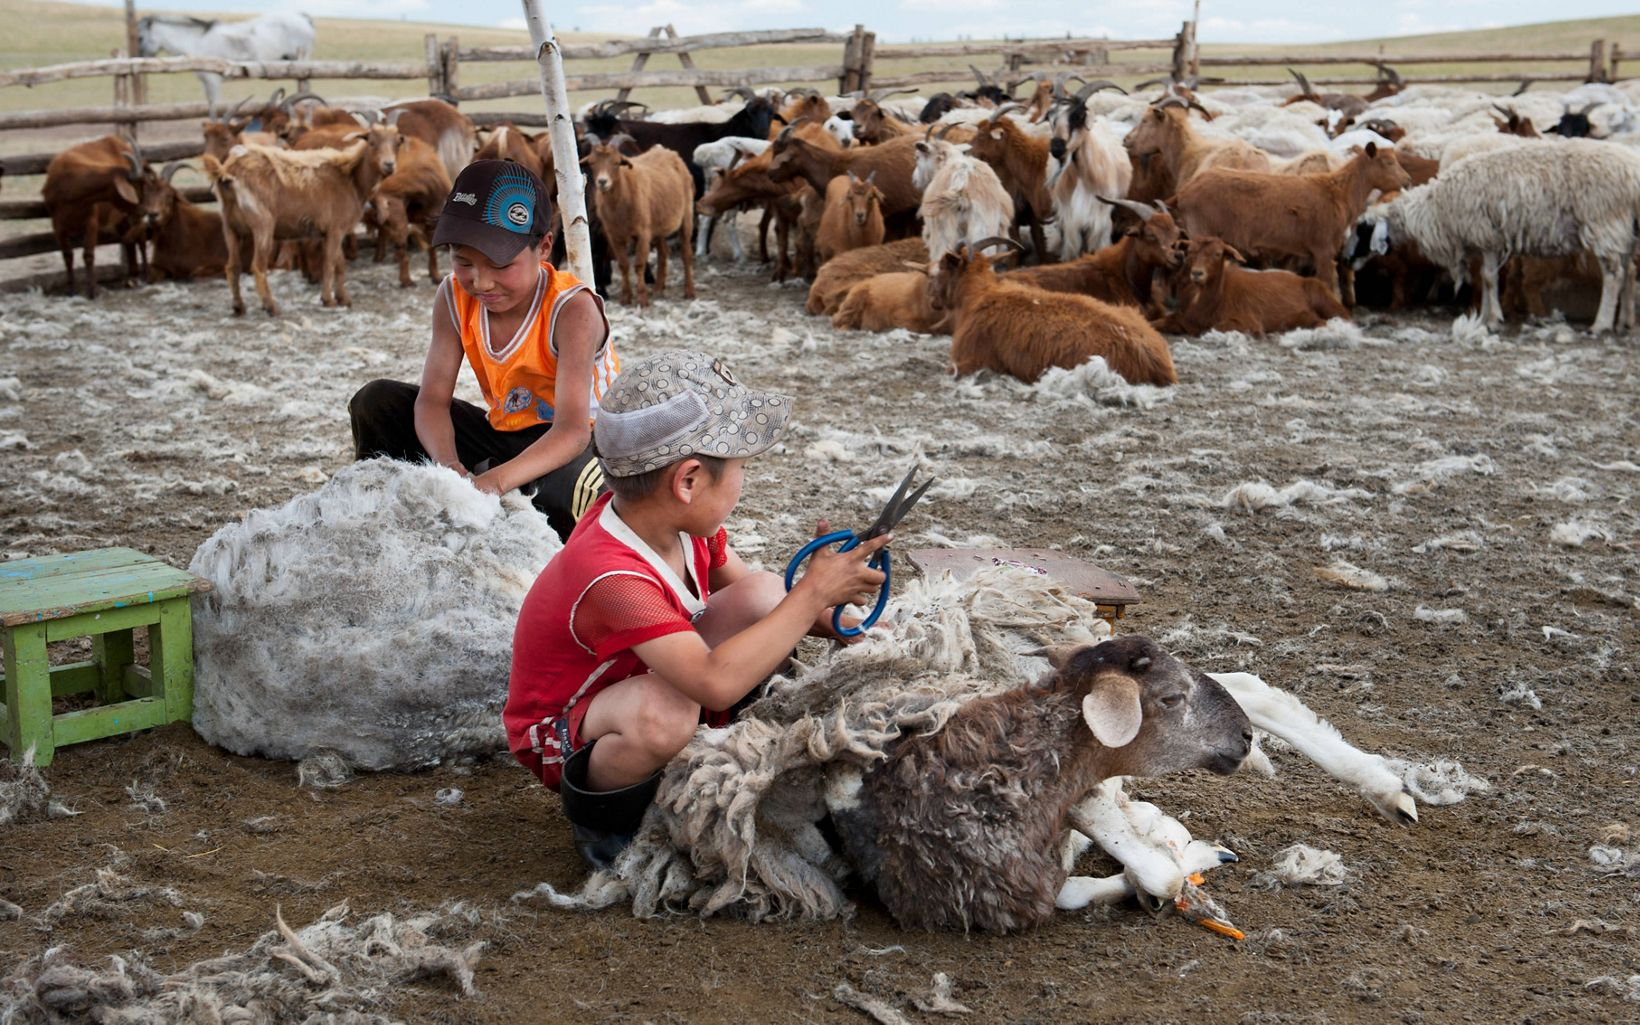 Two boys are clipping wool from sheep at their family farm in Mongolia.